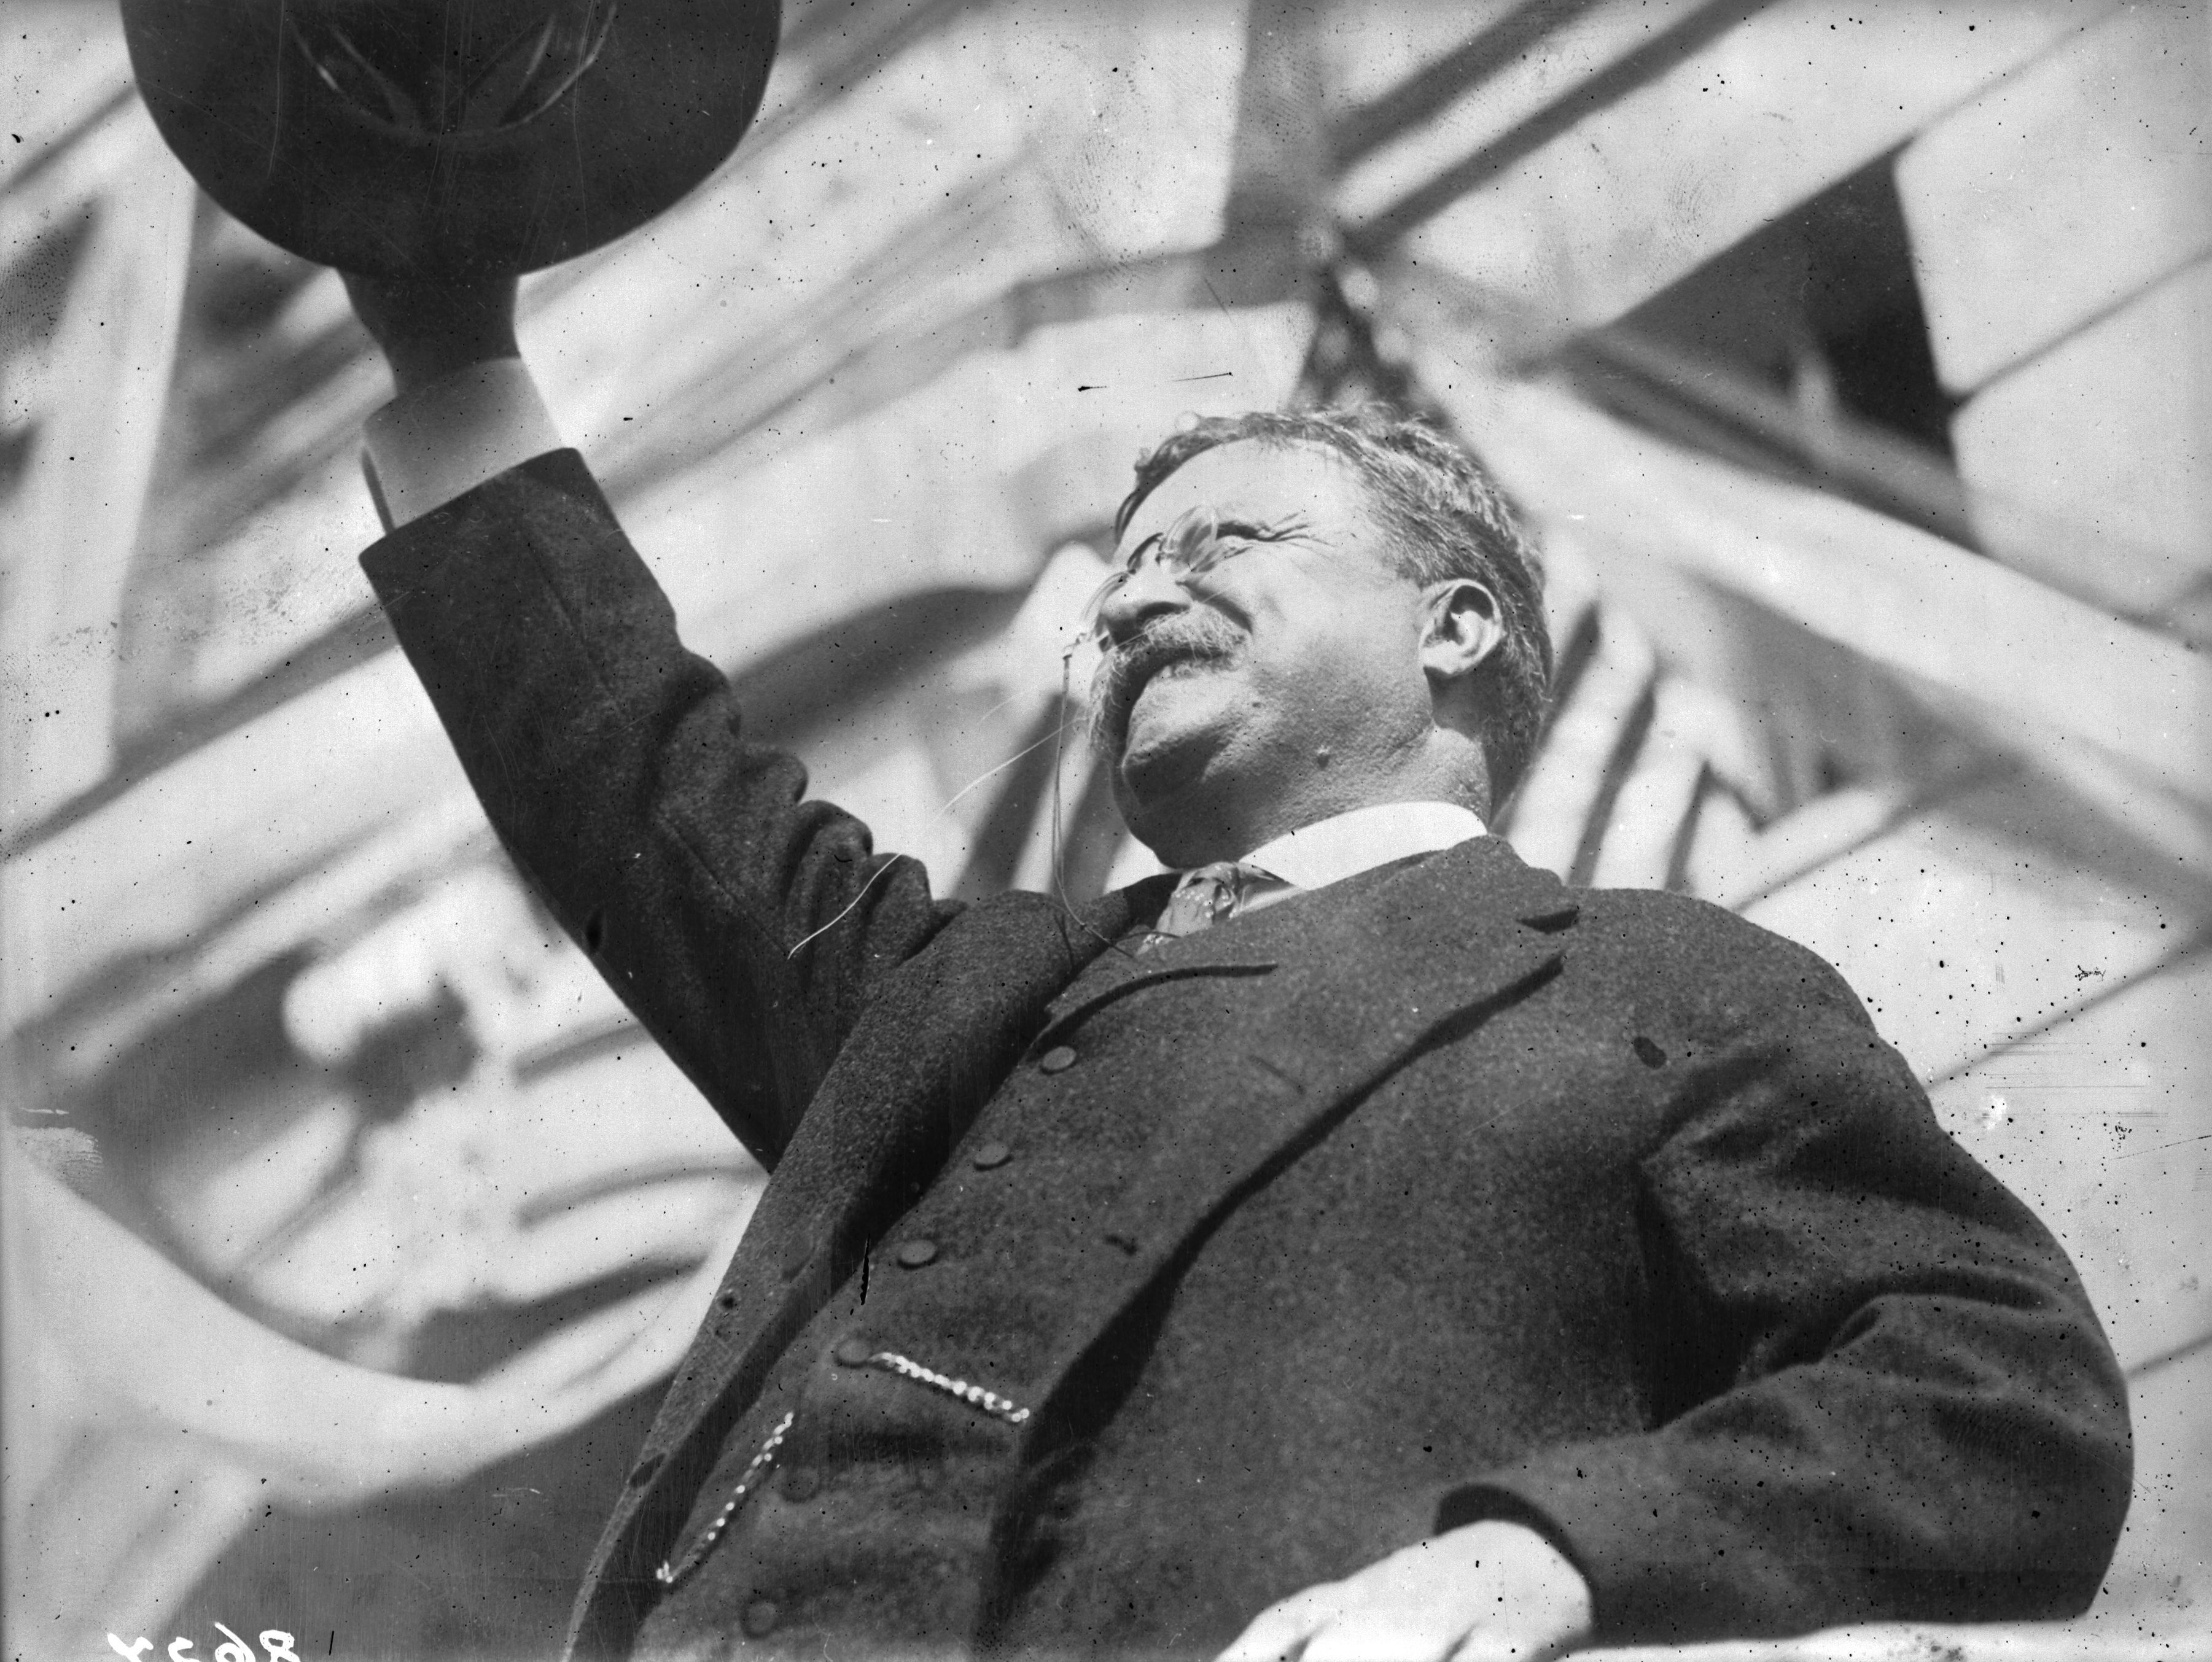 1912:  America's youngest president, Theodore Roosevelt (1858 - 1919), who succeeded William McKinley after his assassination. Roosevelt was a popular leader and the first American to receive the Nobel Peace Prize, which was awarded for his mediation in the Russo-Japanese war.  (Photo by Topical Press Agency/Getty Images)